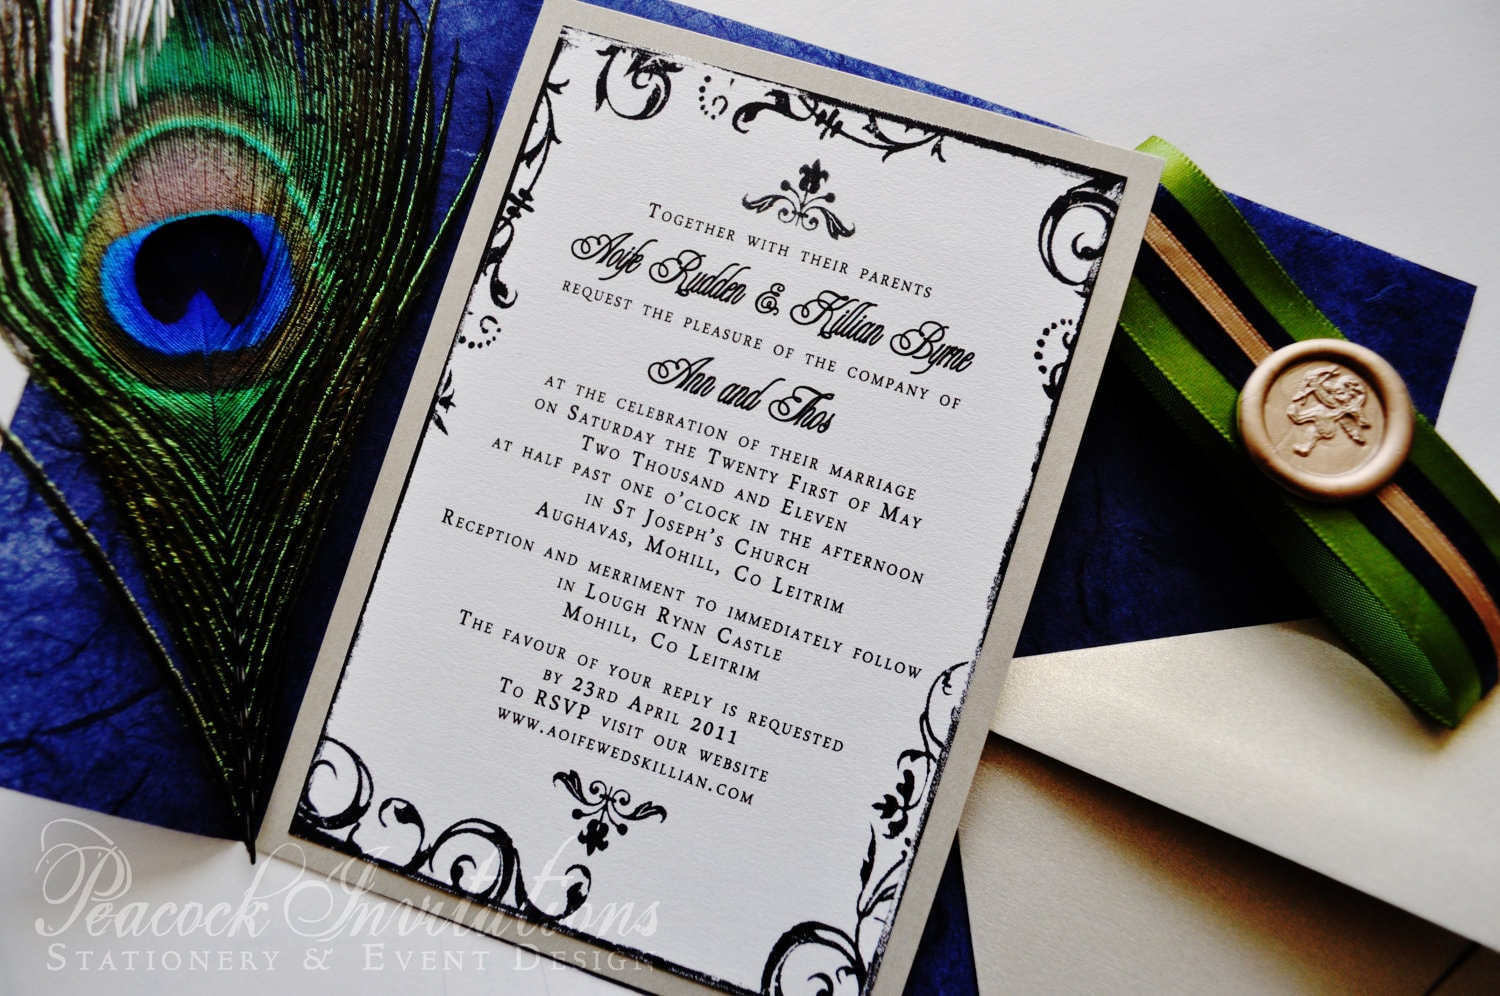 Sophie paris rustic french peacock themed wedding invitations for Peacock wedding invitations with photo